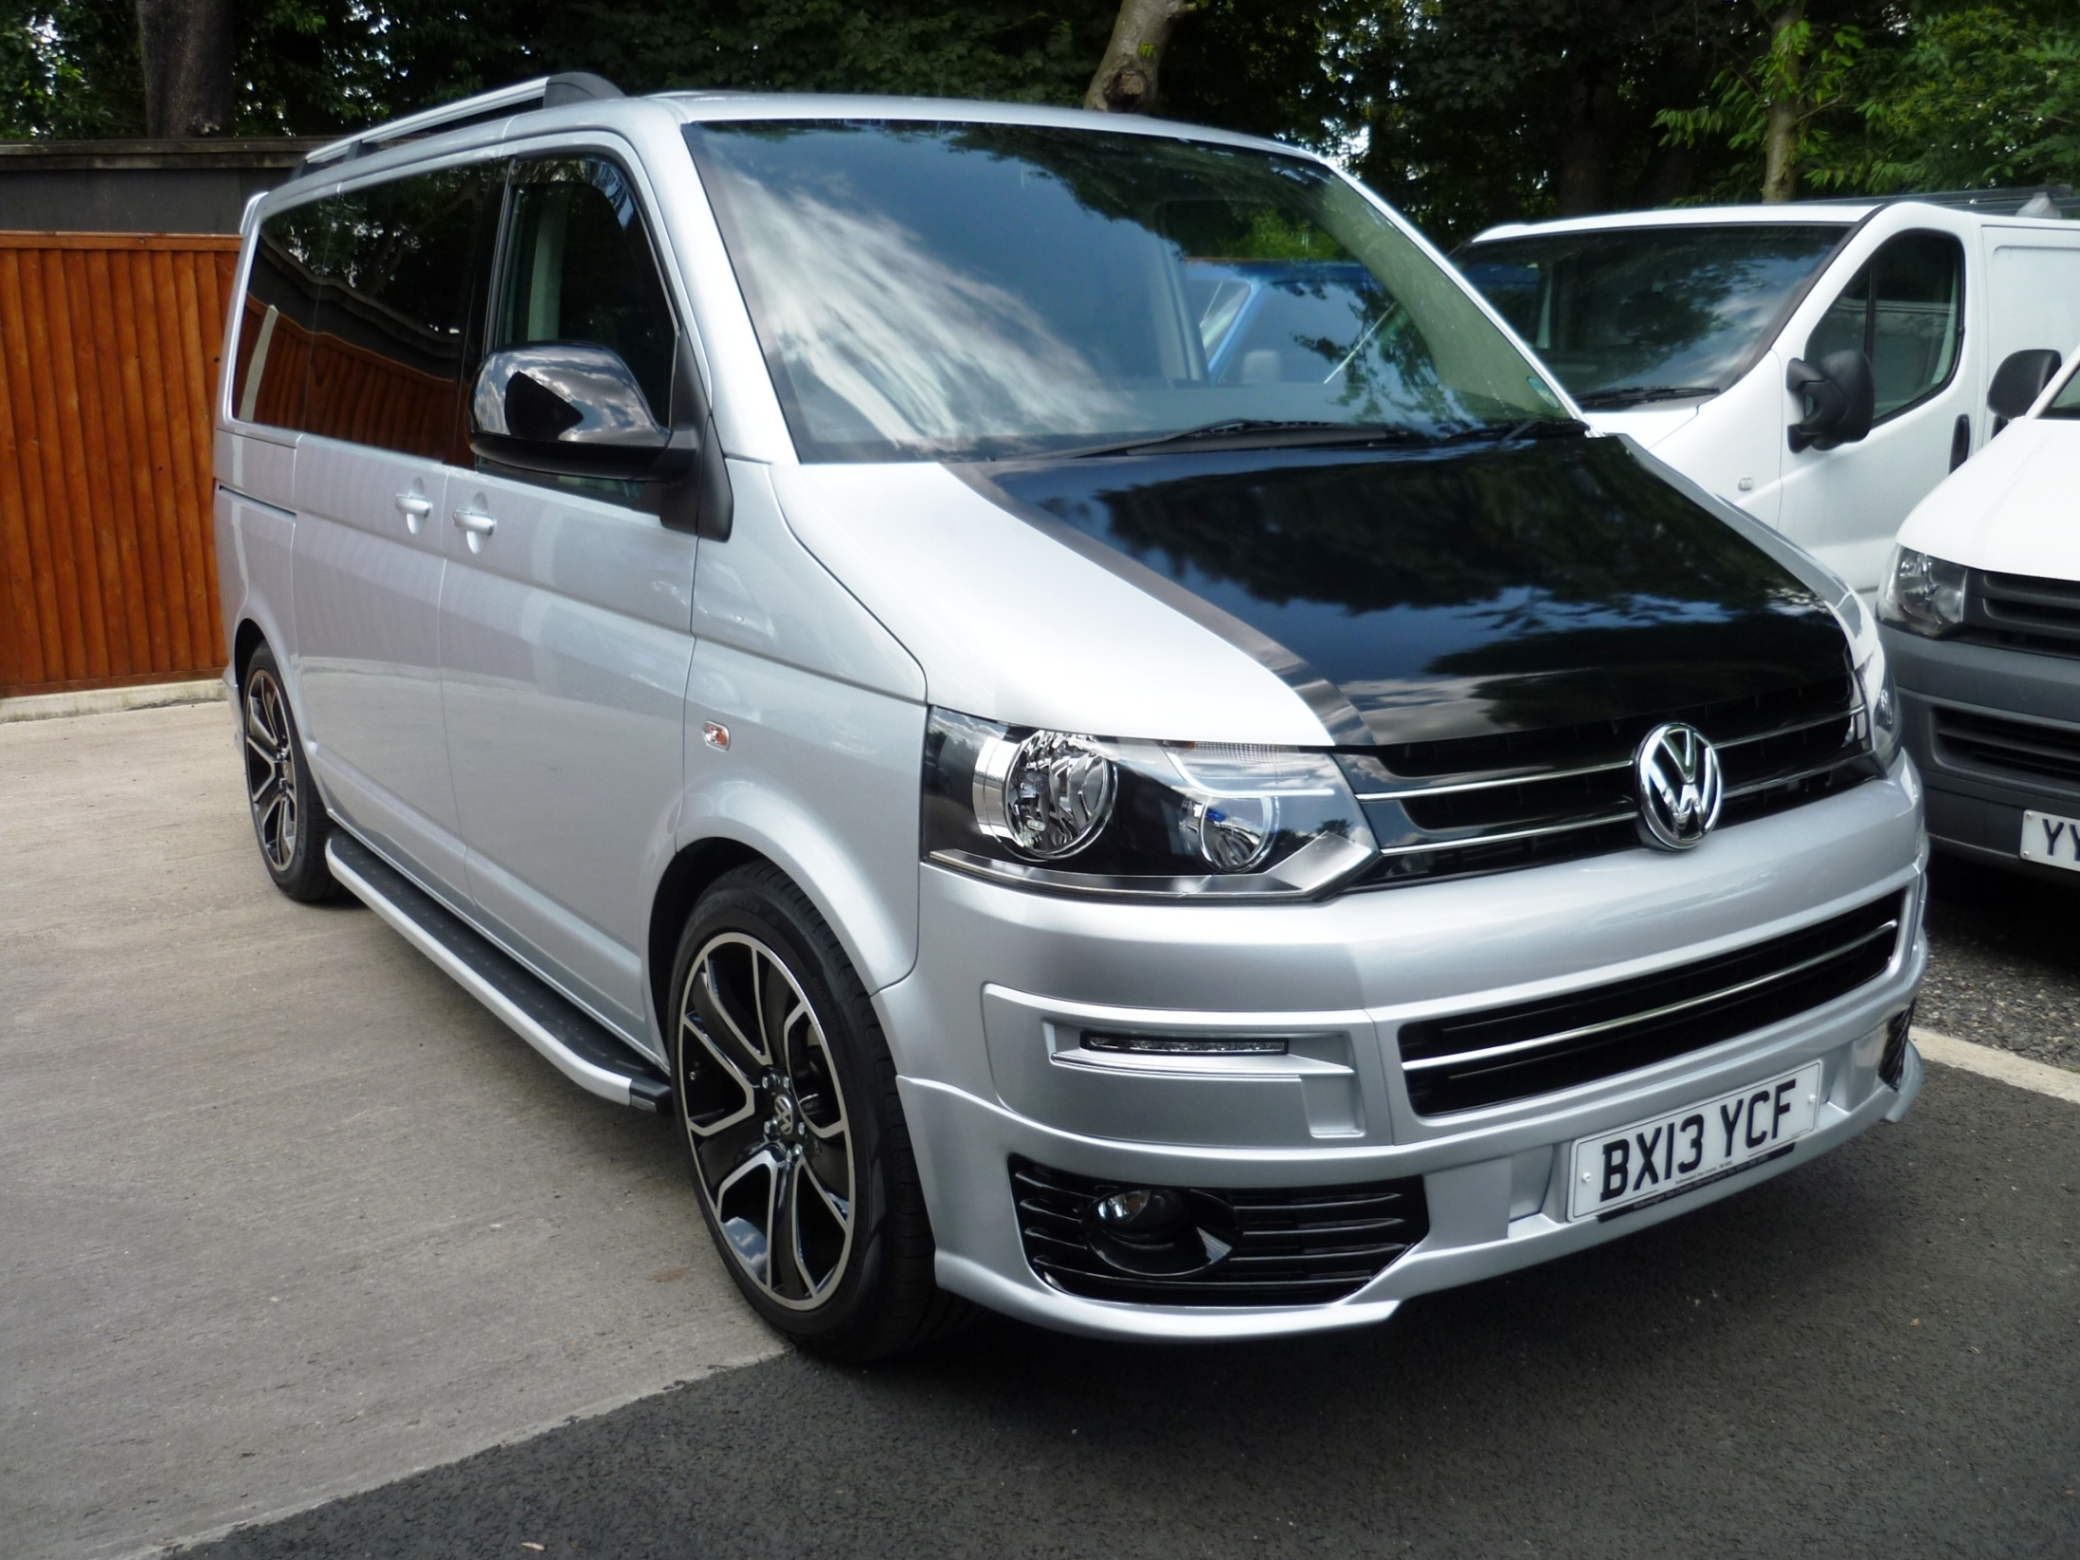 VW T5 Transporter Silver with Big Alloys | Work and Leisure Vehicles ...